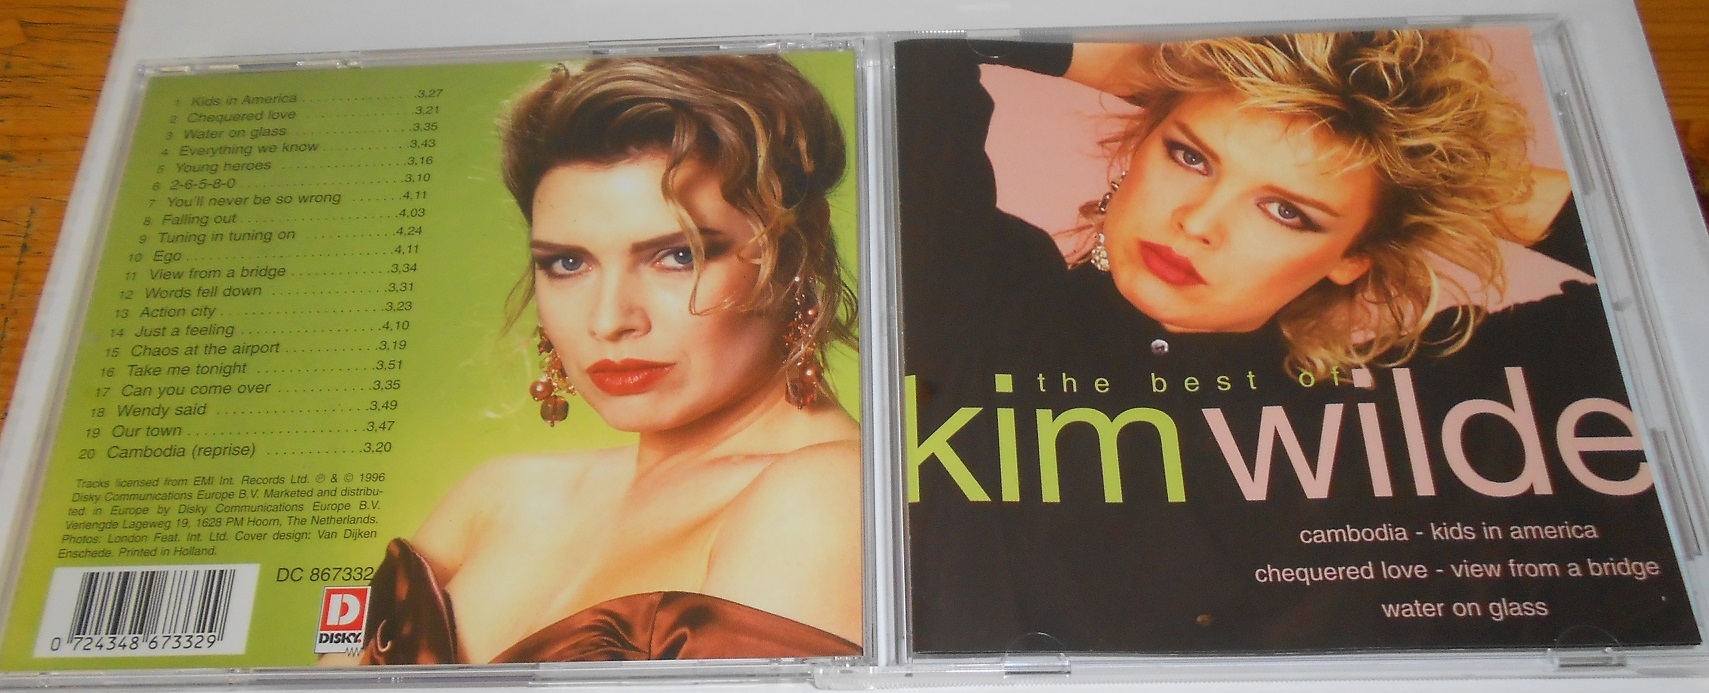 Kim Wilde - The Best Of